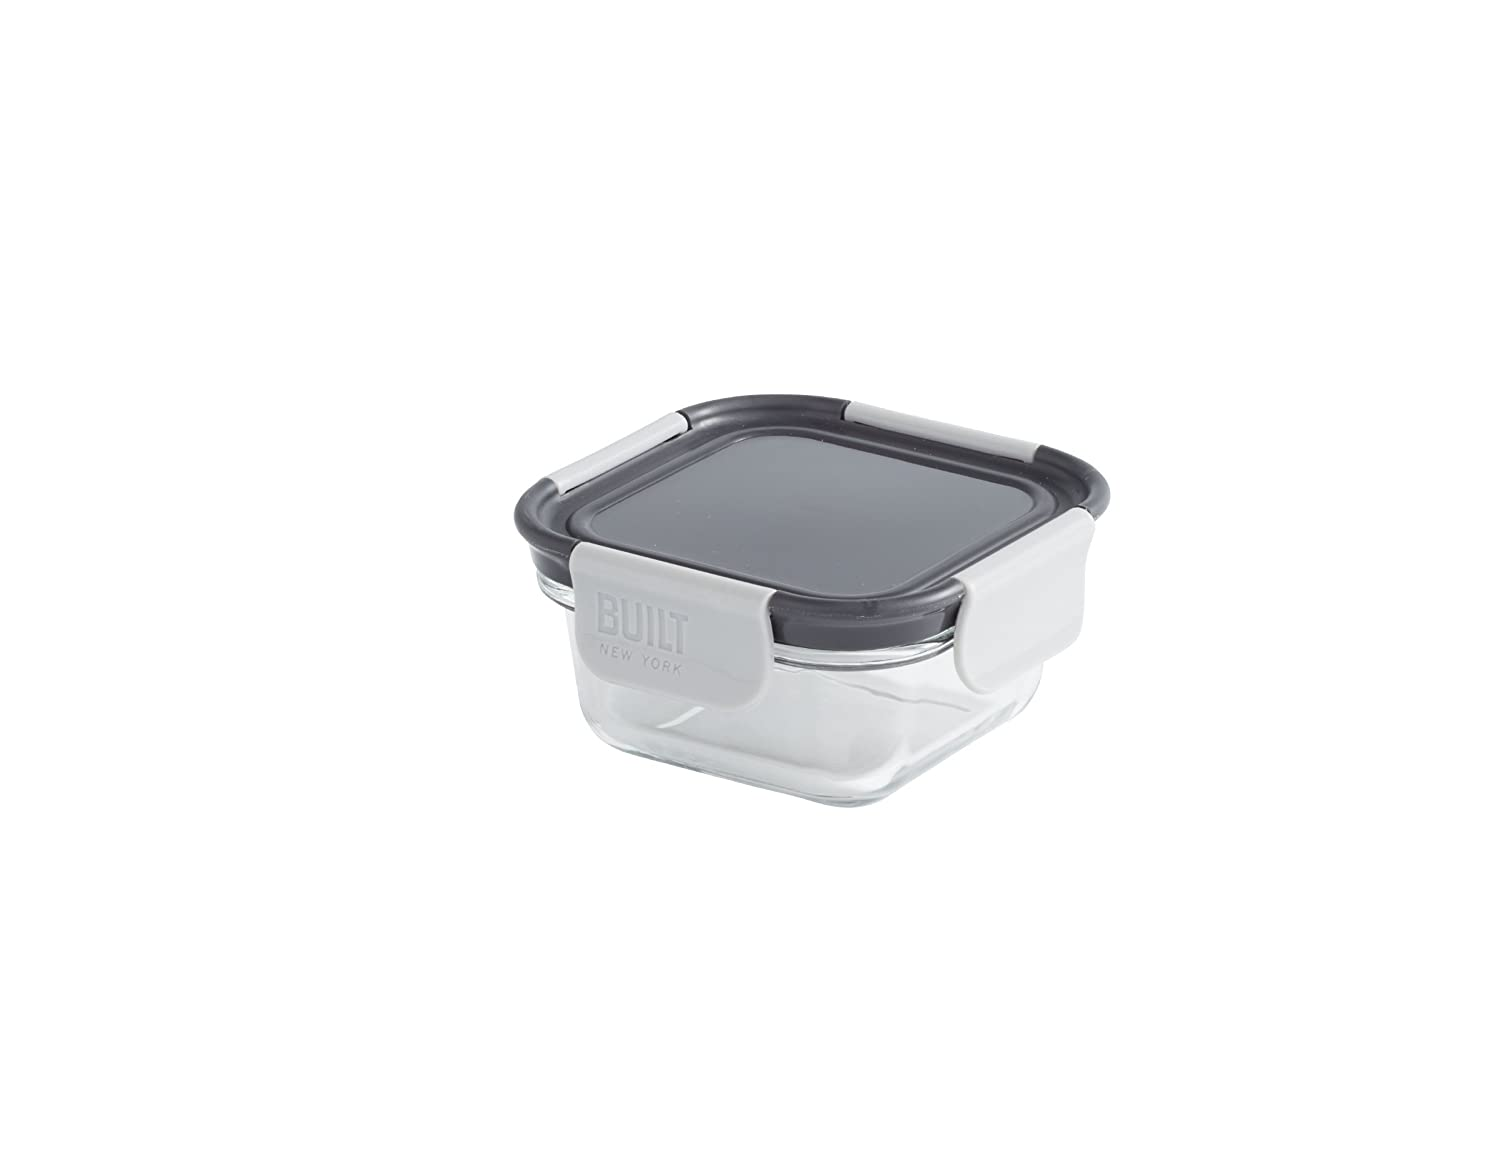 BUILT NY Gourmet Bento Glass Snack Container, 10-Ounce, Black 5183567